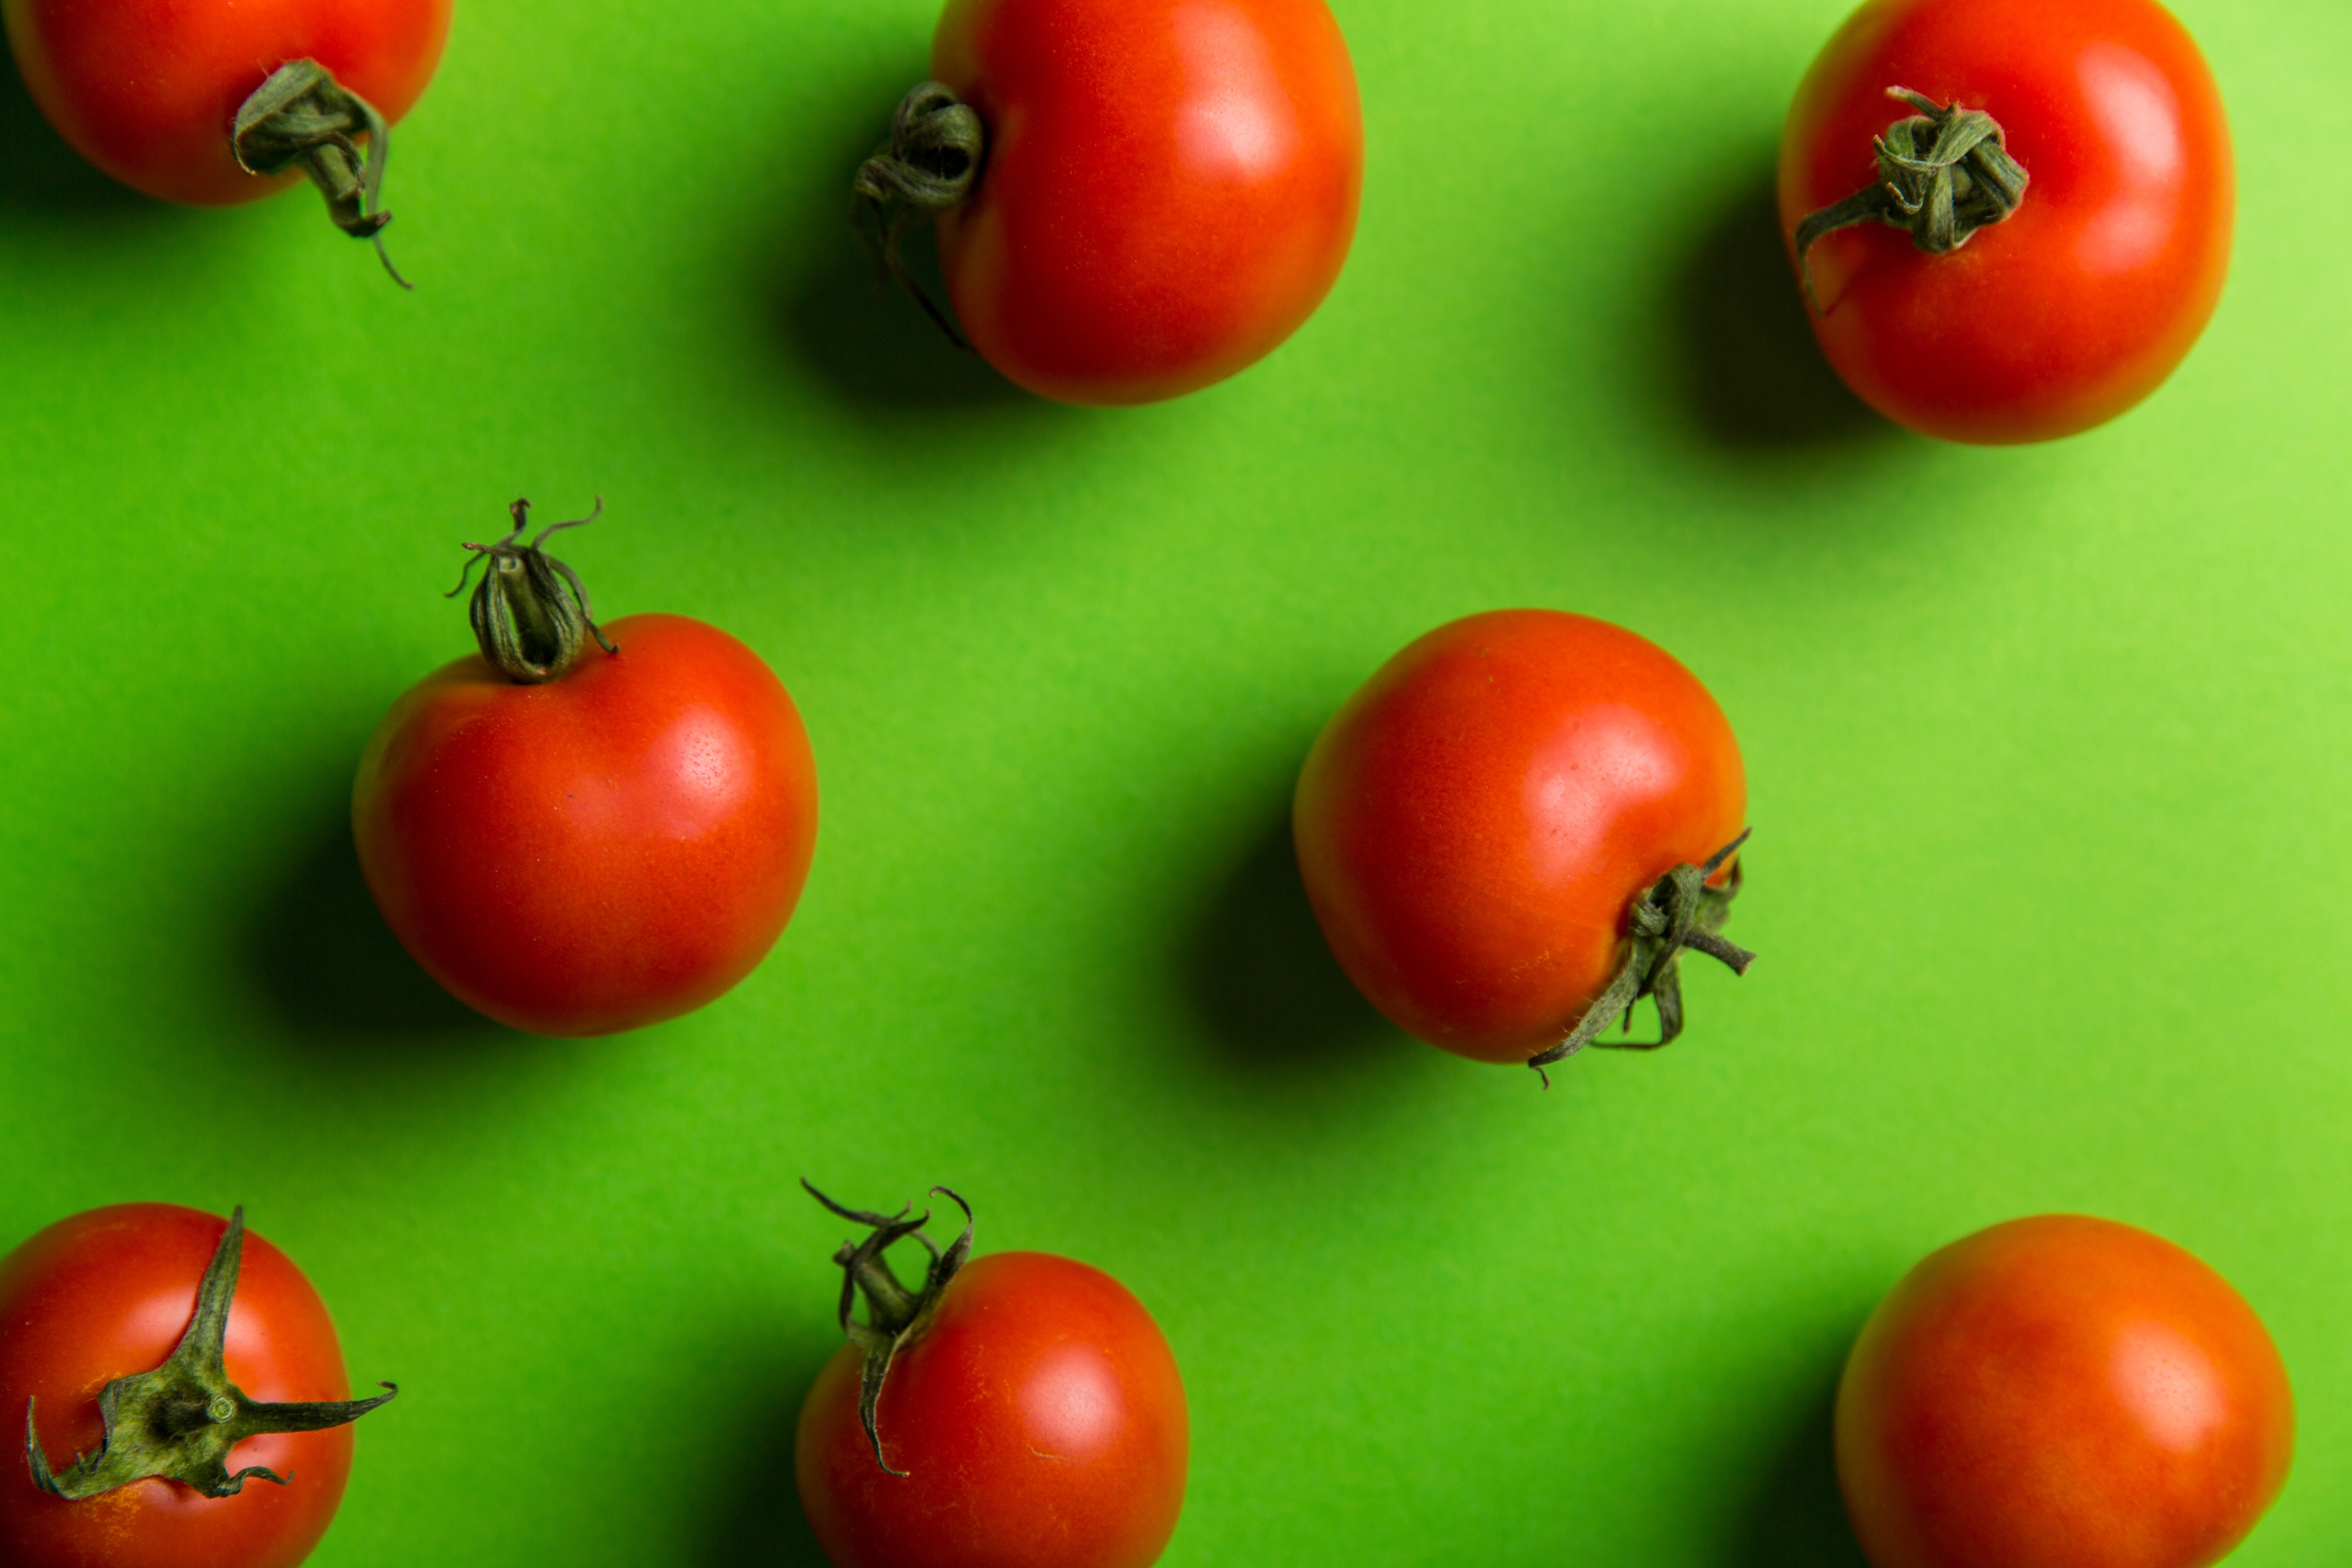 Increasing nutritional value (bio-stimulated) of selected performant tomato varieties to be cultivated in areas with temperate climate